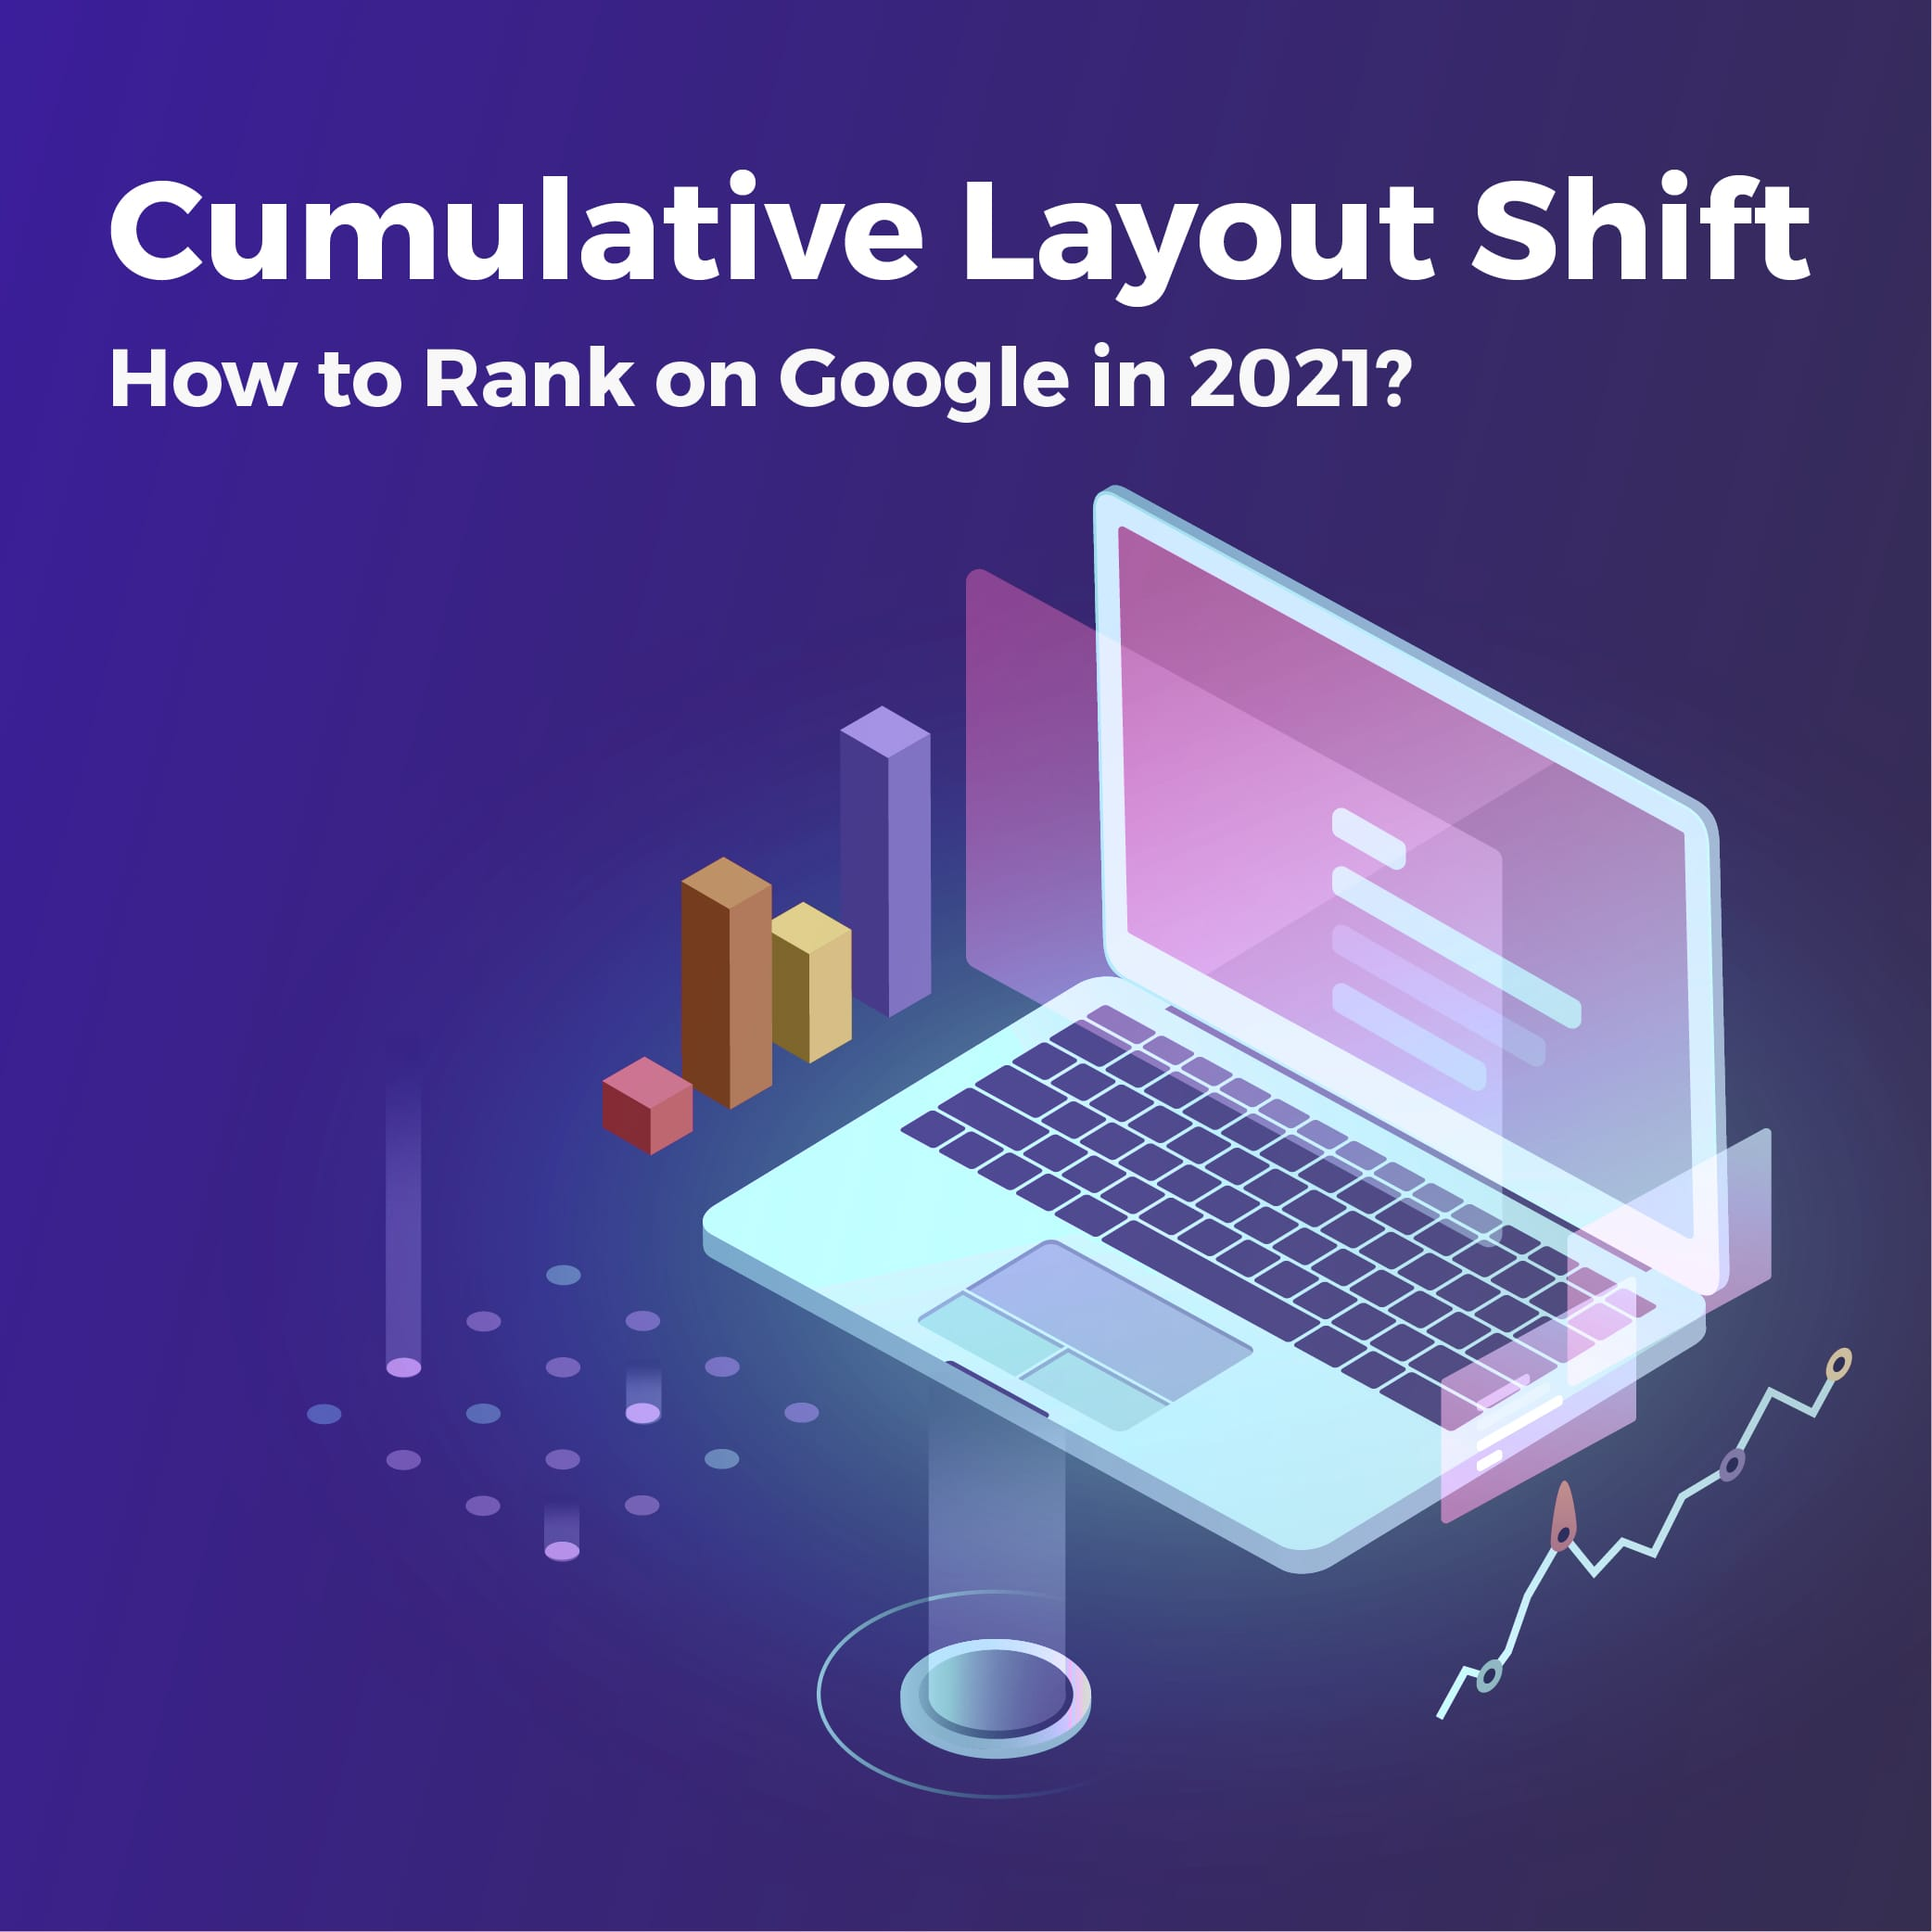 52754Cumulative Layout Shift – How to Rank on Google in 2021?